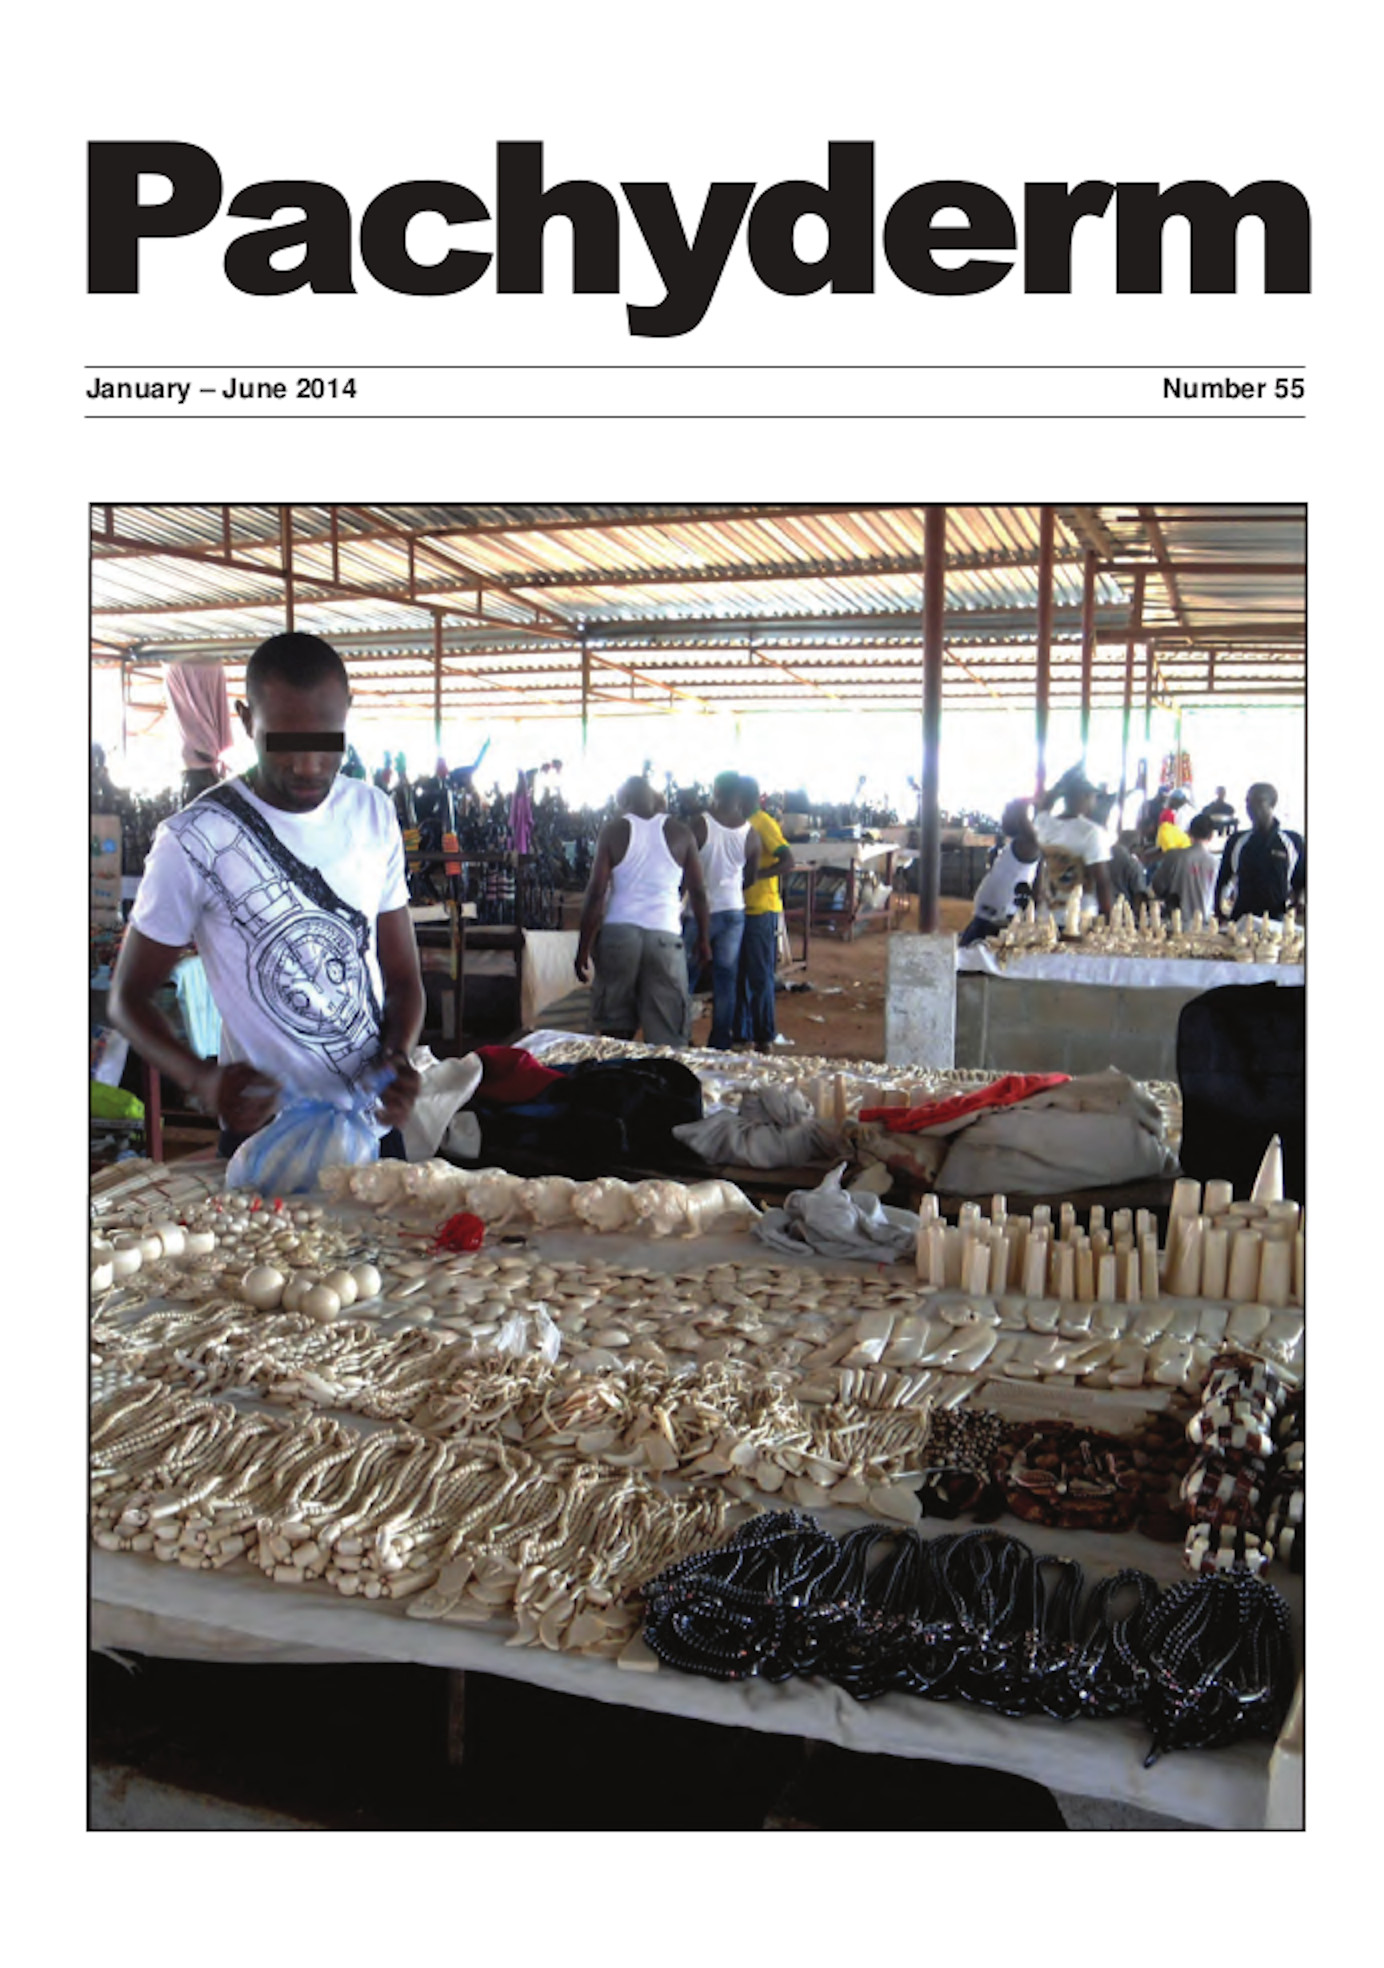 Cover: Angolan authorities rarely inspect the displays of ivory in Mercado do Artesanato in Luanda, resulting in the largest quantity of illegal ivory on sale in southern Africa. © Lucy Vigne